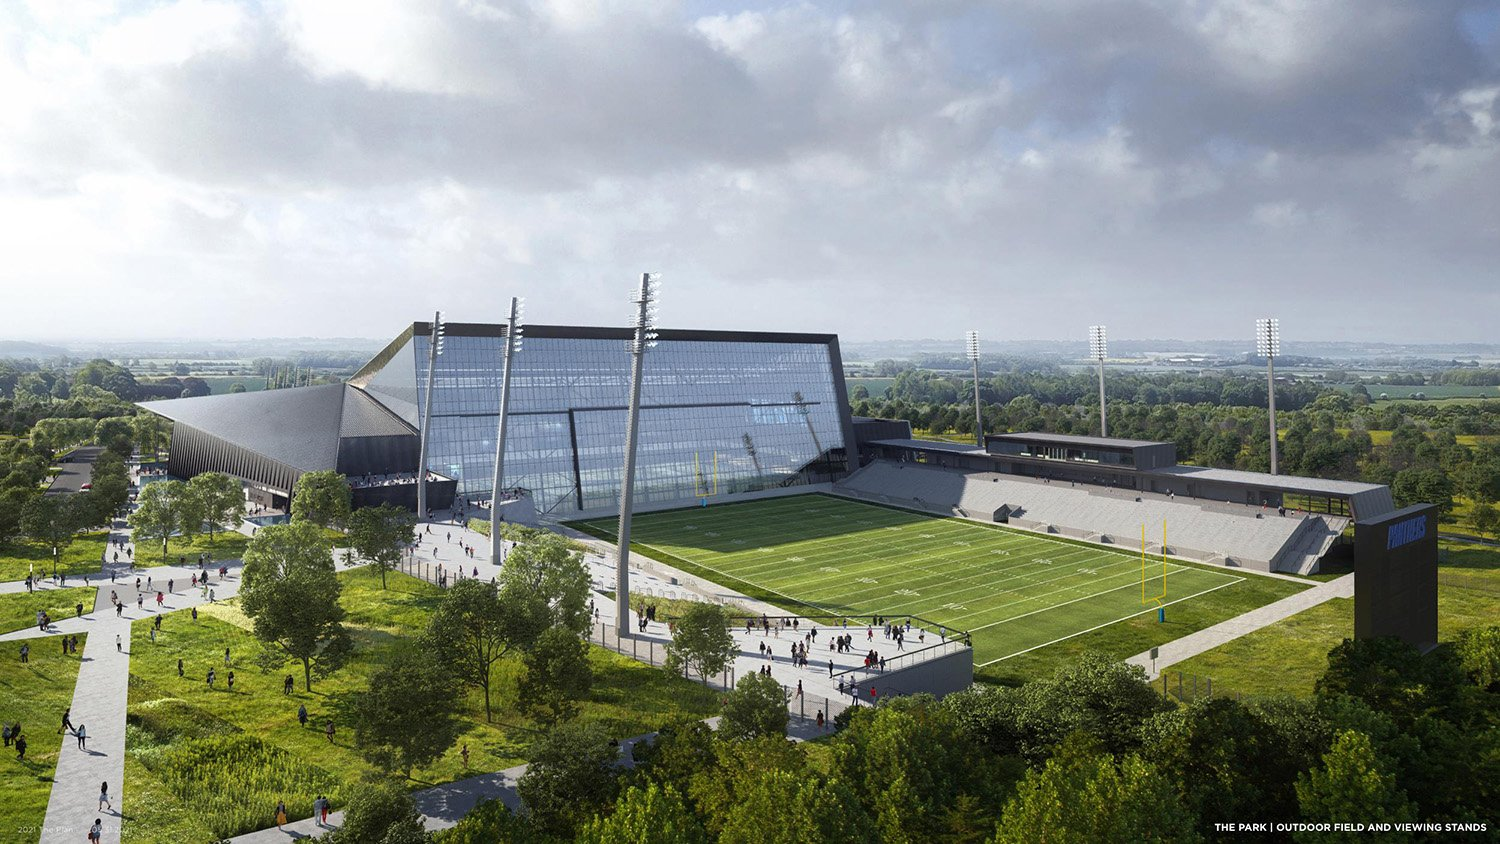 THE PARK|OUTDOOR FIELD AND VIEWING STANDS POPULOUS}